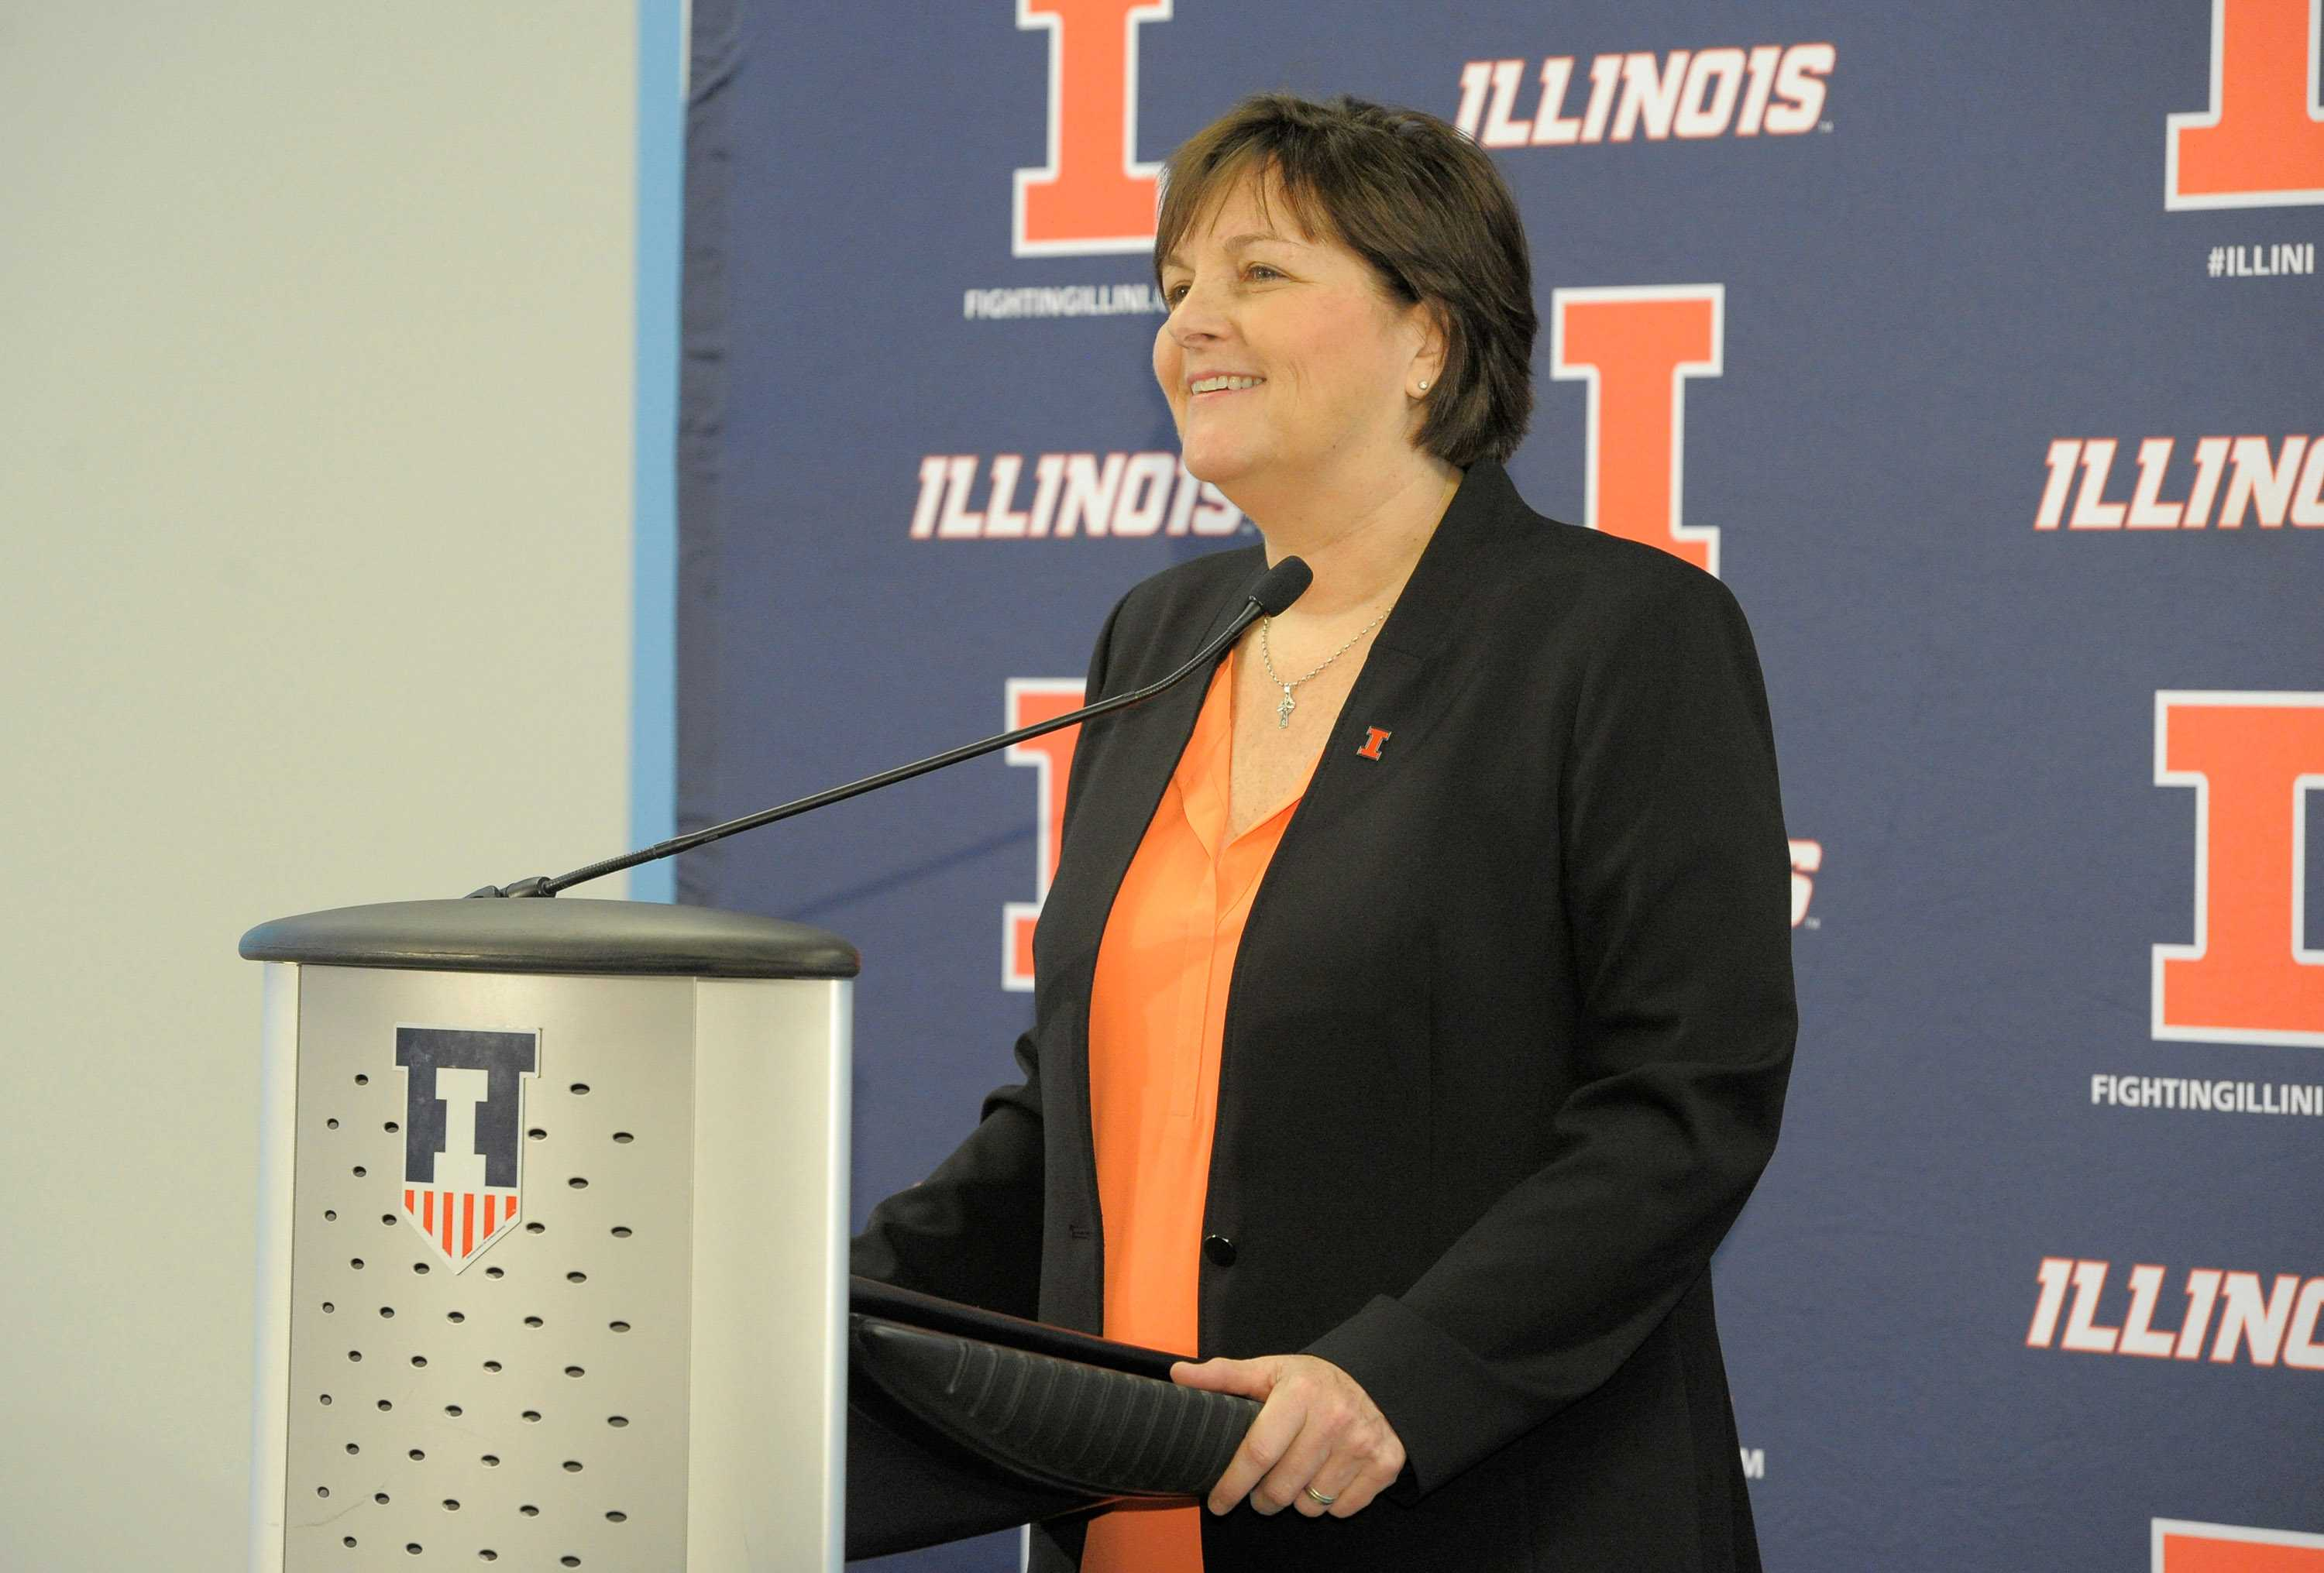 Nancy Fahey is the new head coach for Illini women's basketball after coaching for 31 years at Washington University in St. Louis.